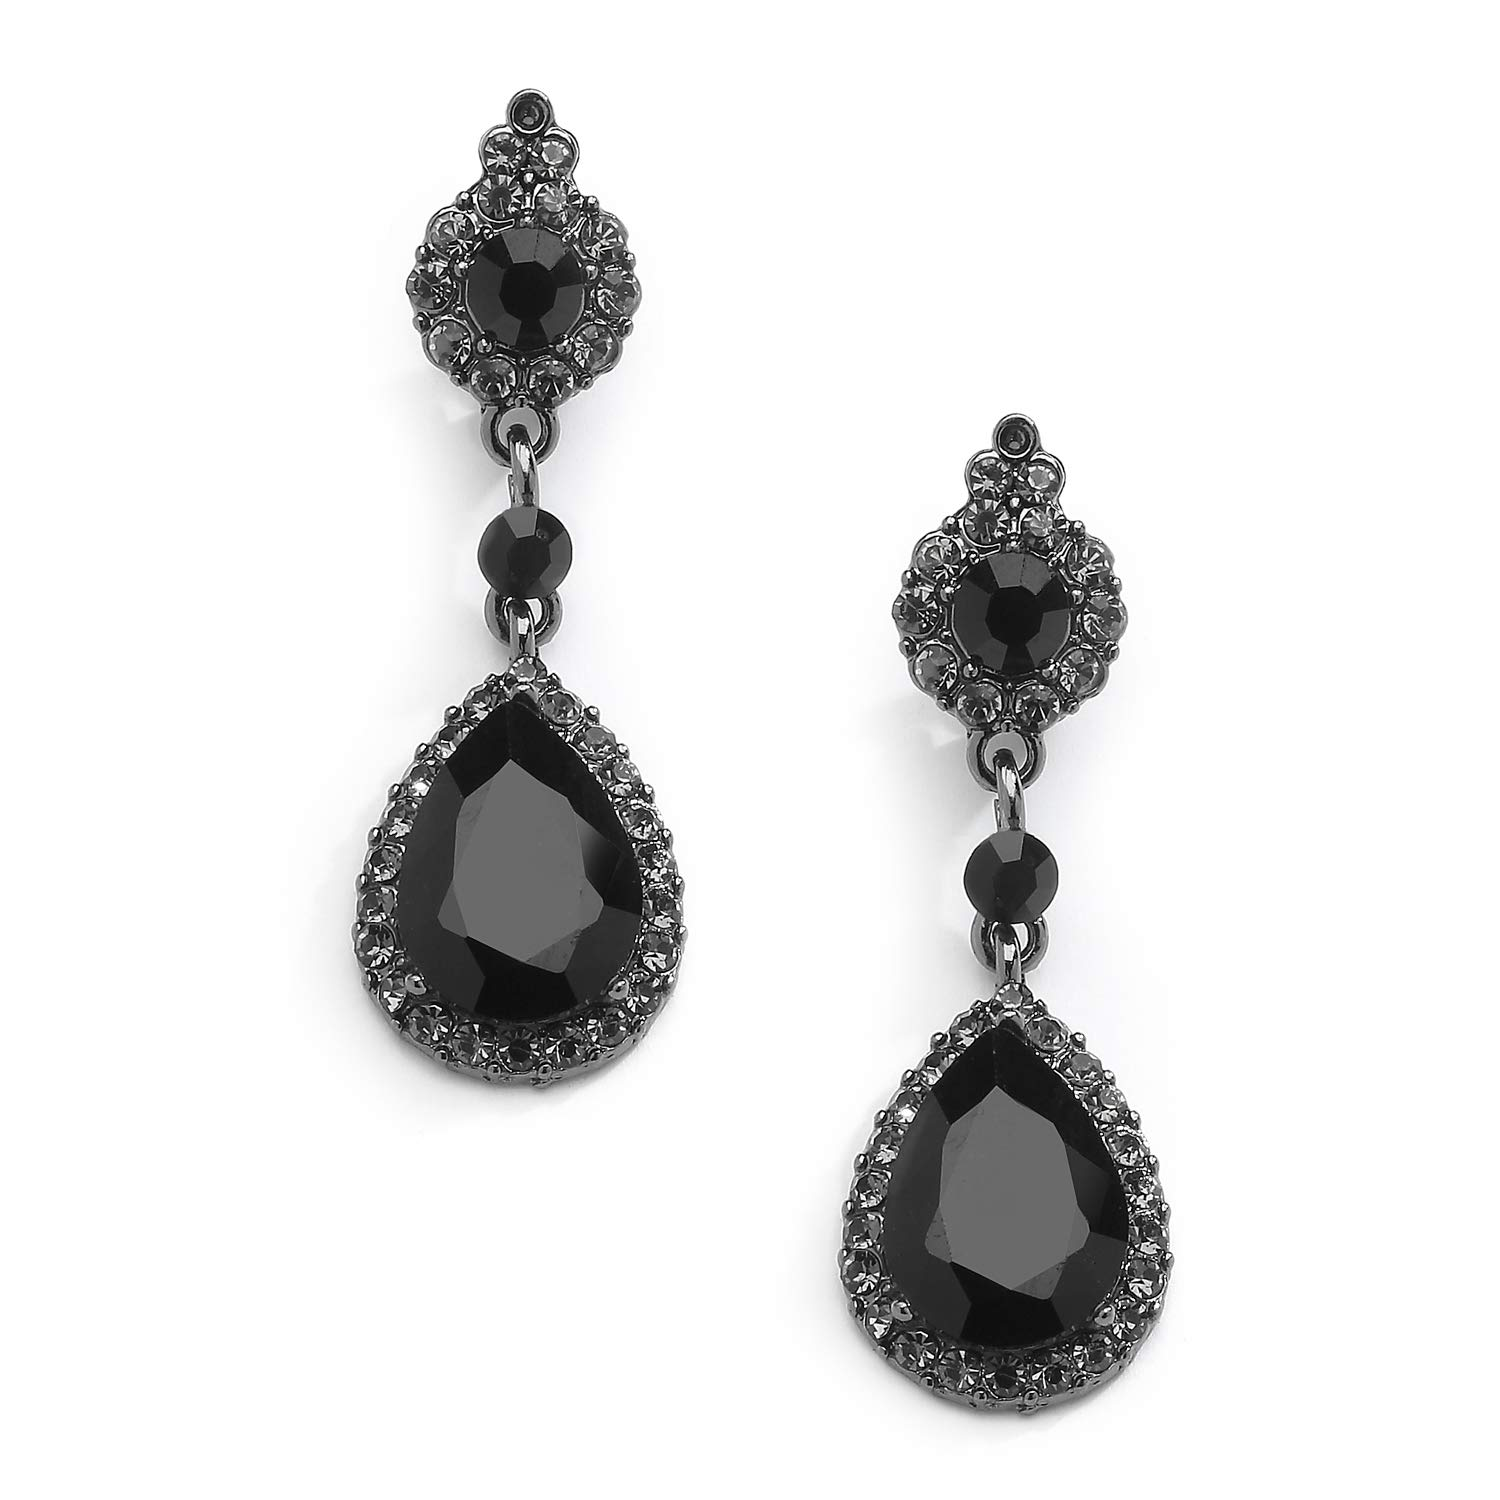 Mariell Jet Black Crystal Clip On with Pave Frames and Teardrop Dangles - for Proms and Wedding Parties by Mariell